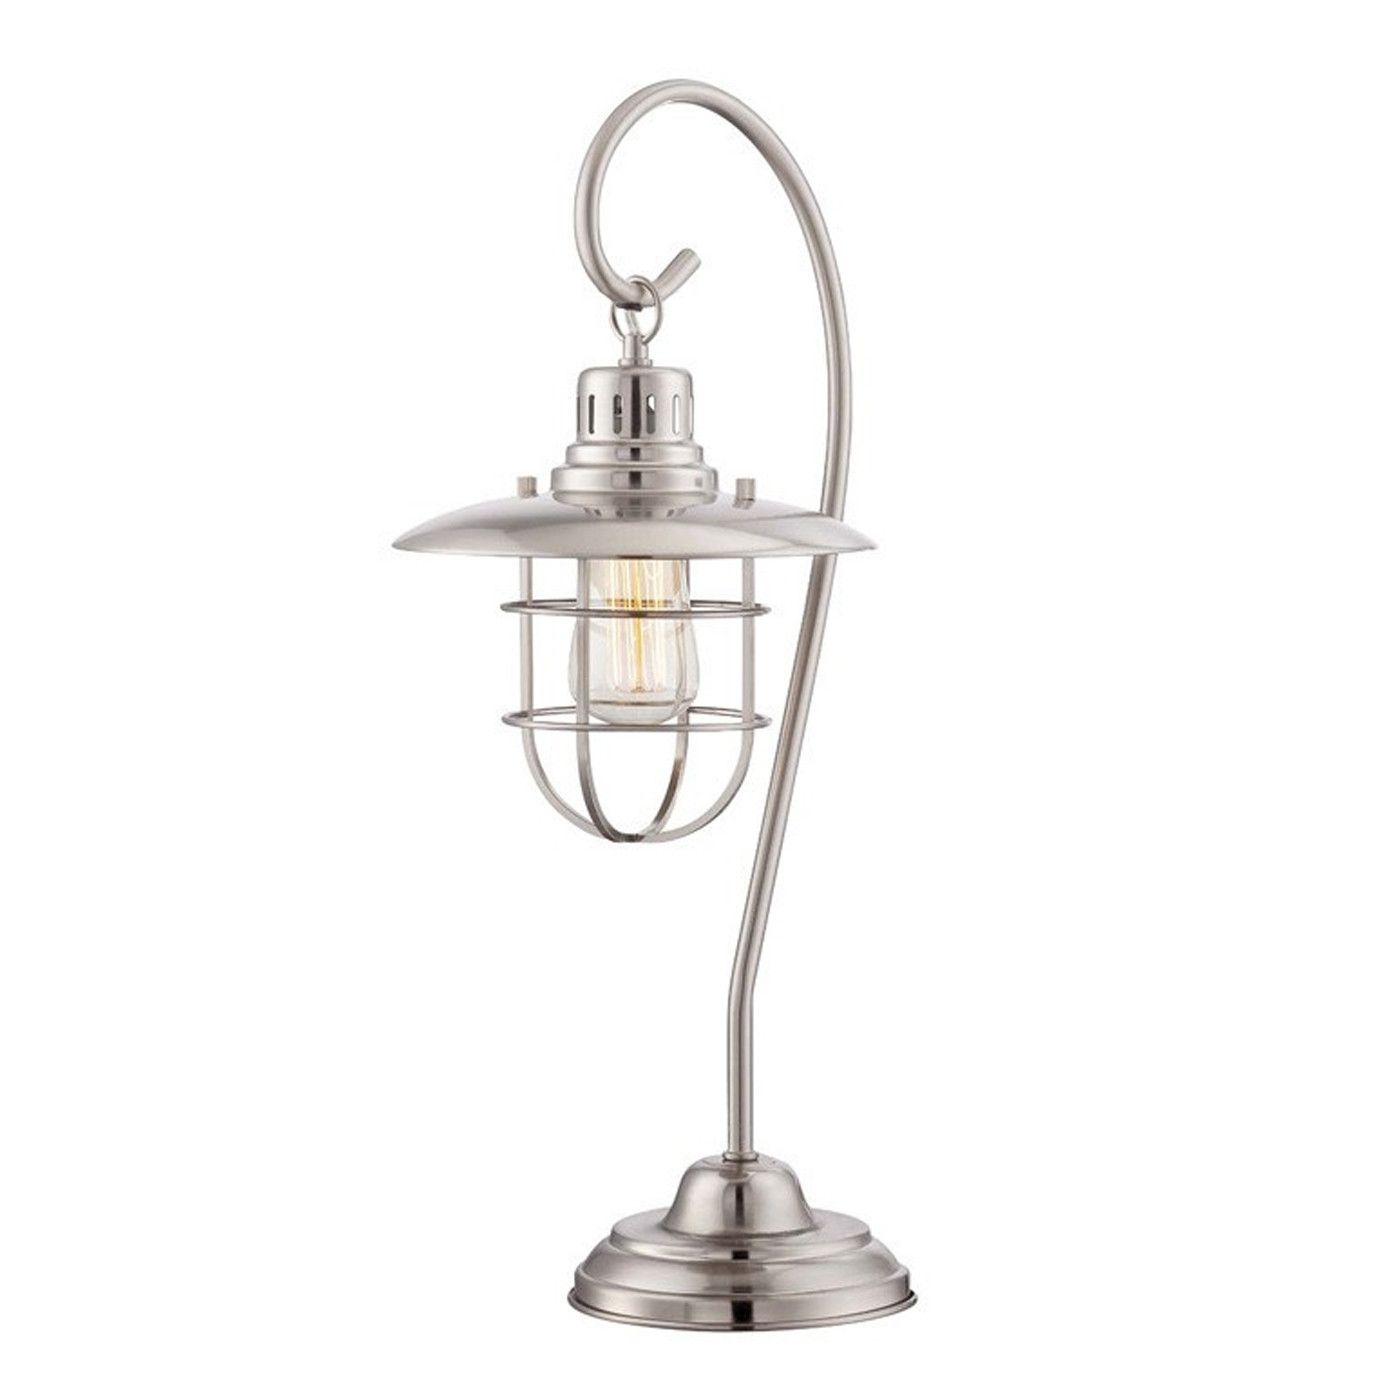 This sweet antique looking lamp will remind of a time when people tied keys to…